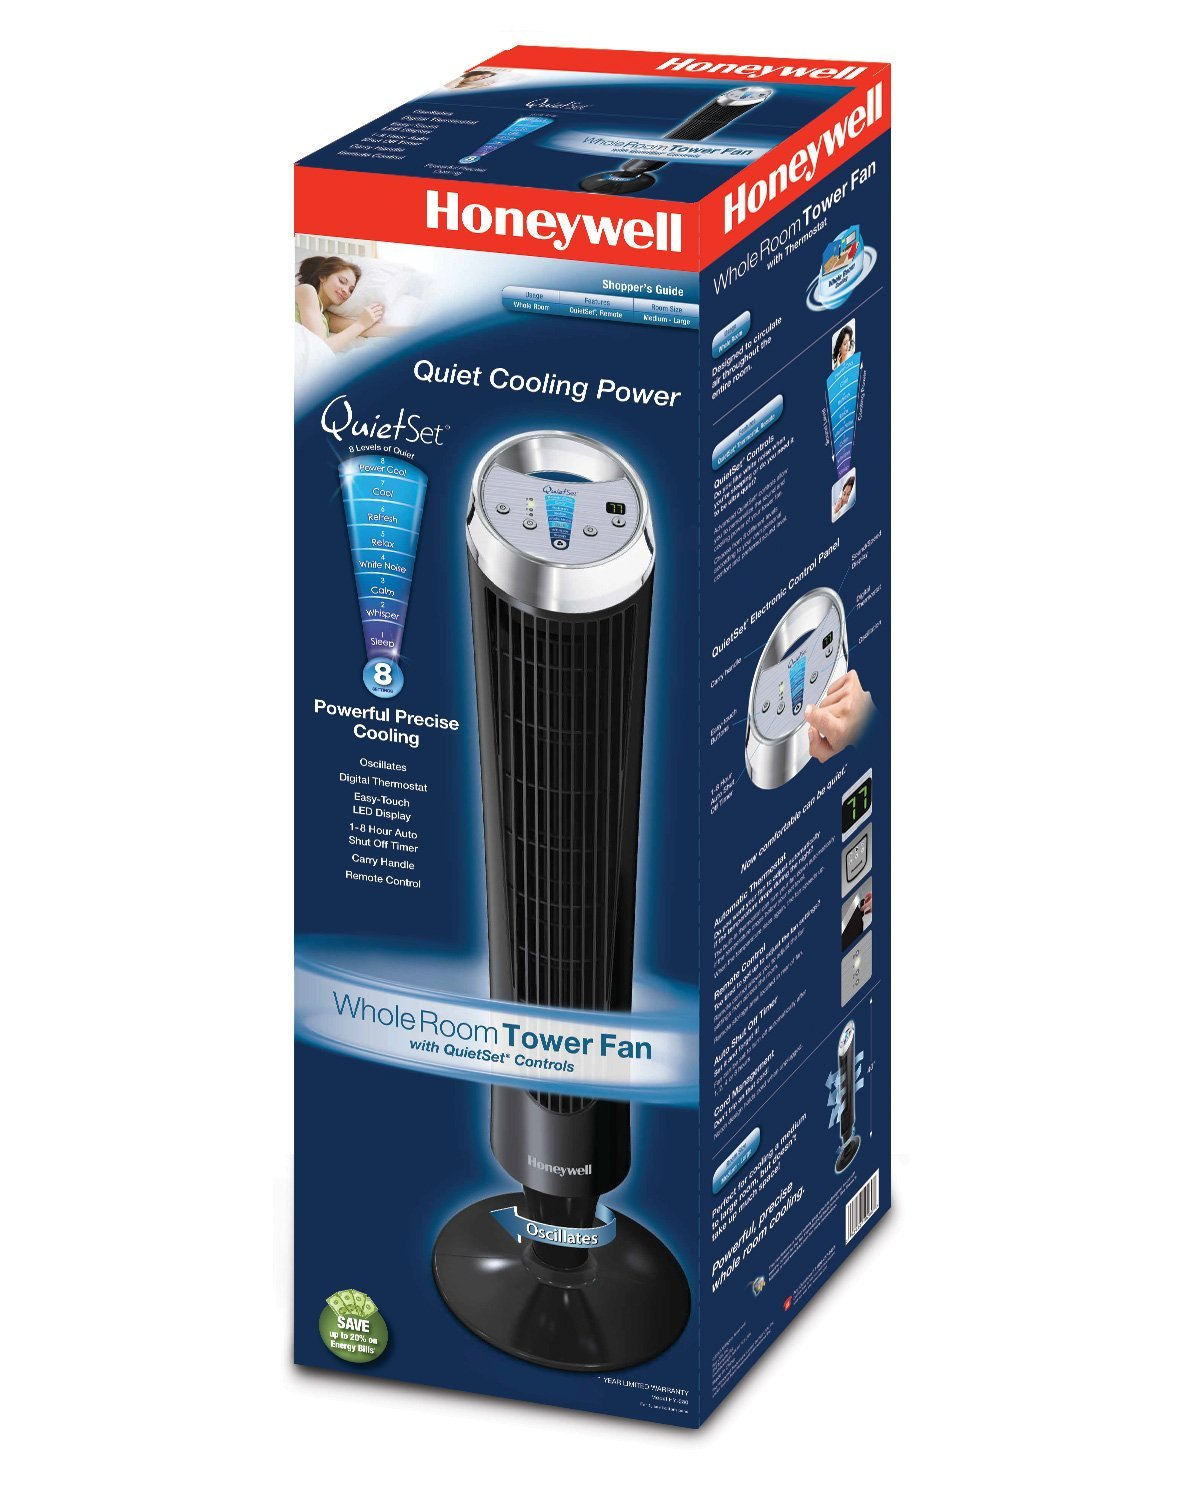 Honeywell QuietSet Whole Room Tower Fan - Black, HY-280